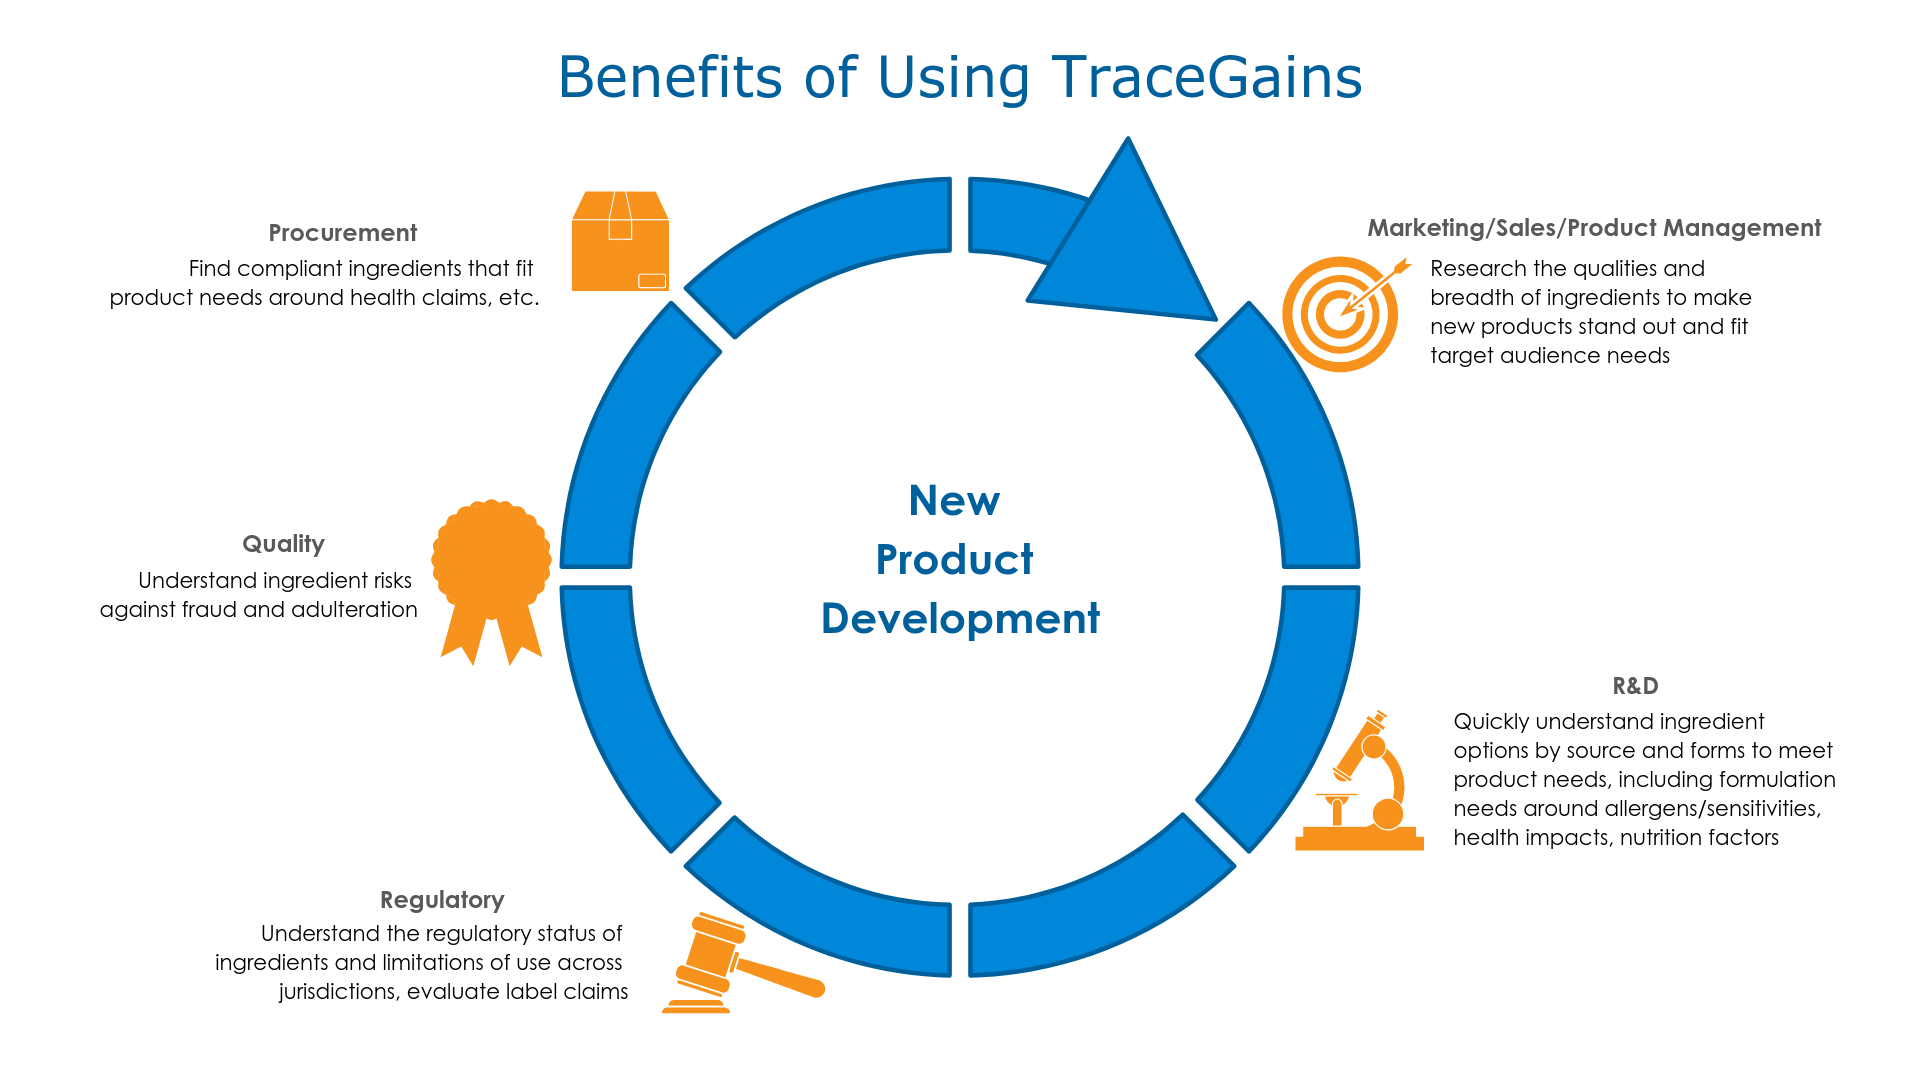 NPD_Benefits of Using TraceGains